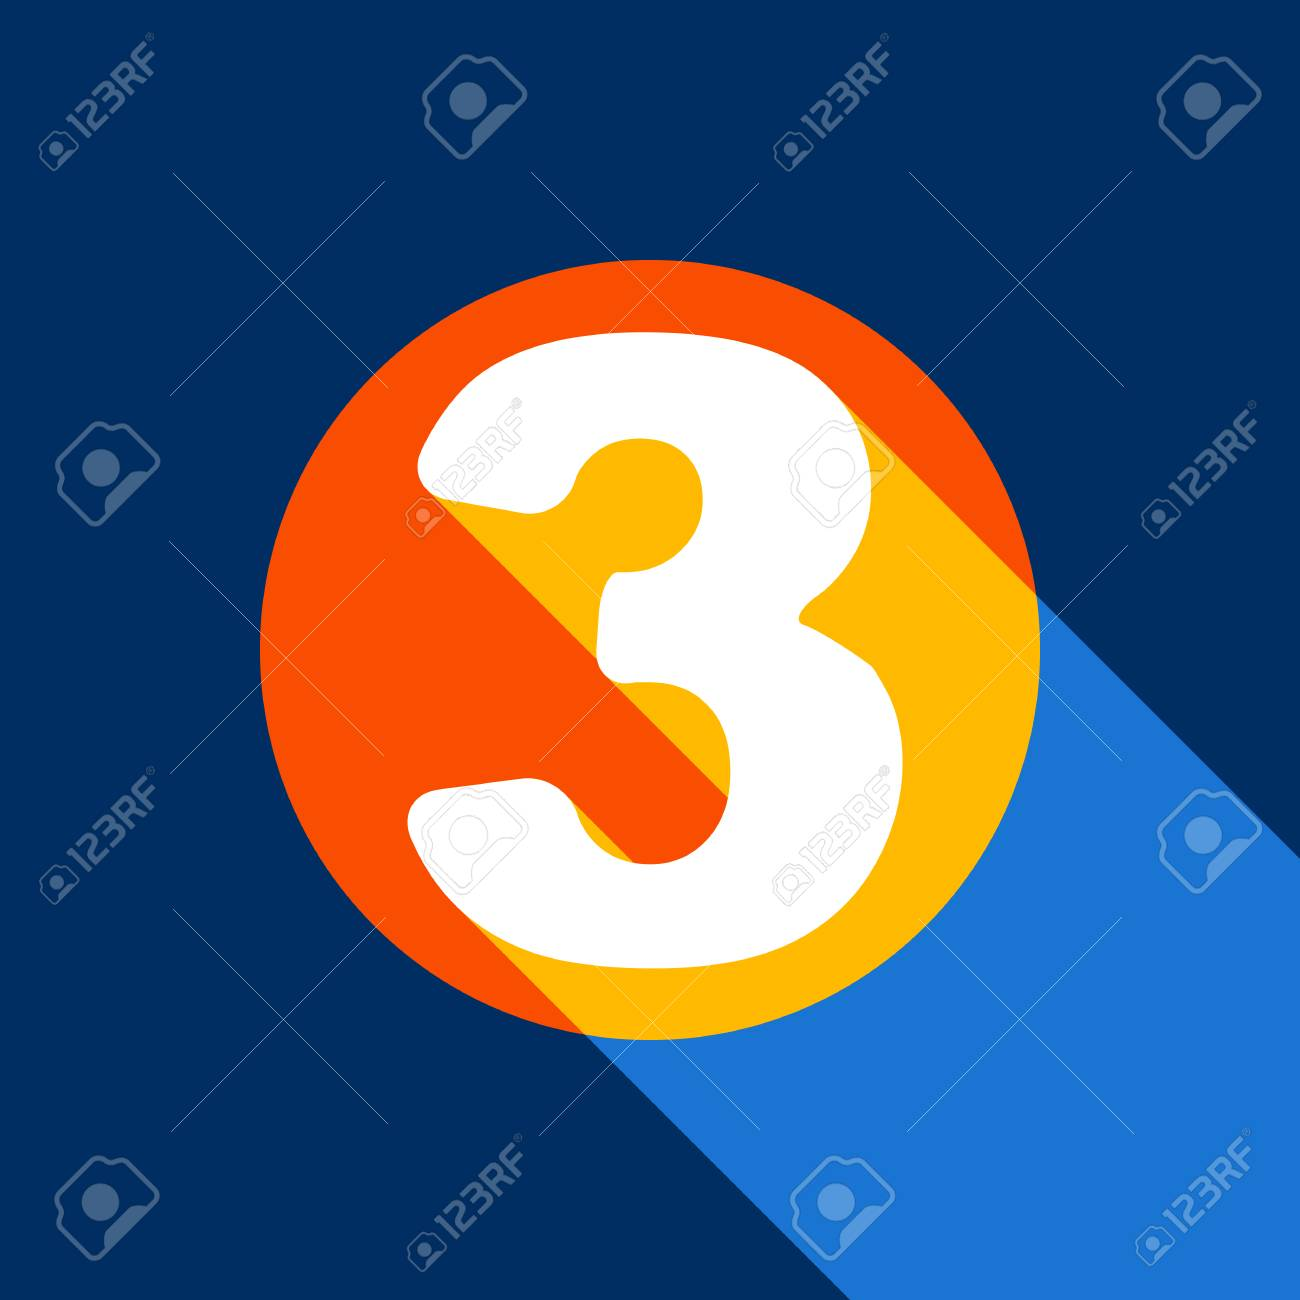 Number 3 sign design template element. Vector. White icon on tangelo circle with infinite shadow of light at cool black background. Selective yellow and bright navy blue are produced. - 90133840